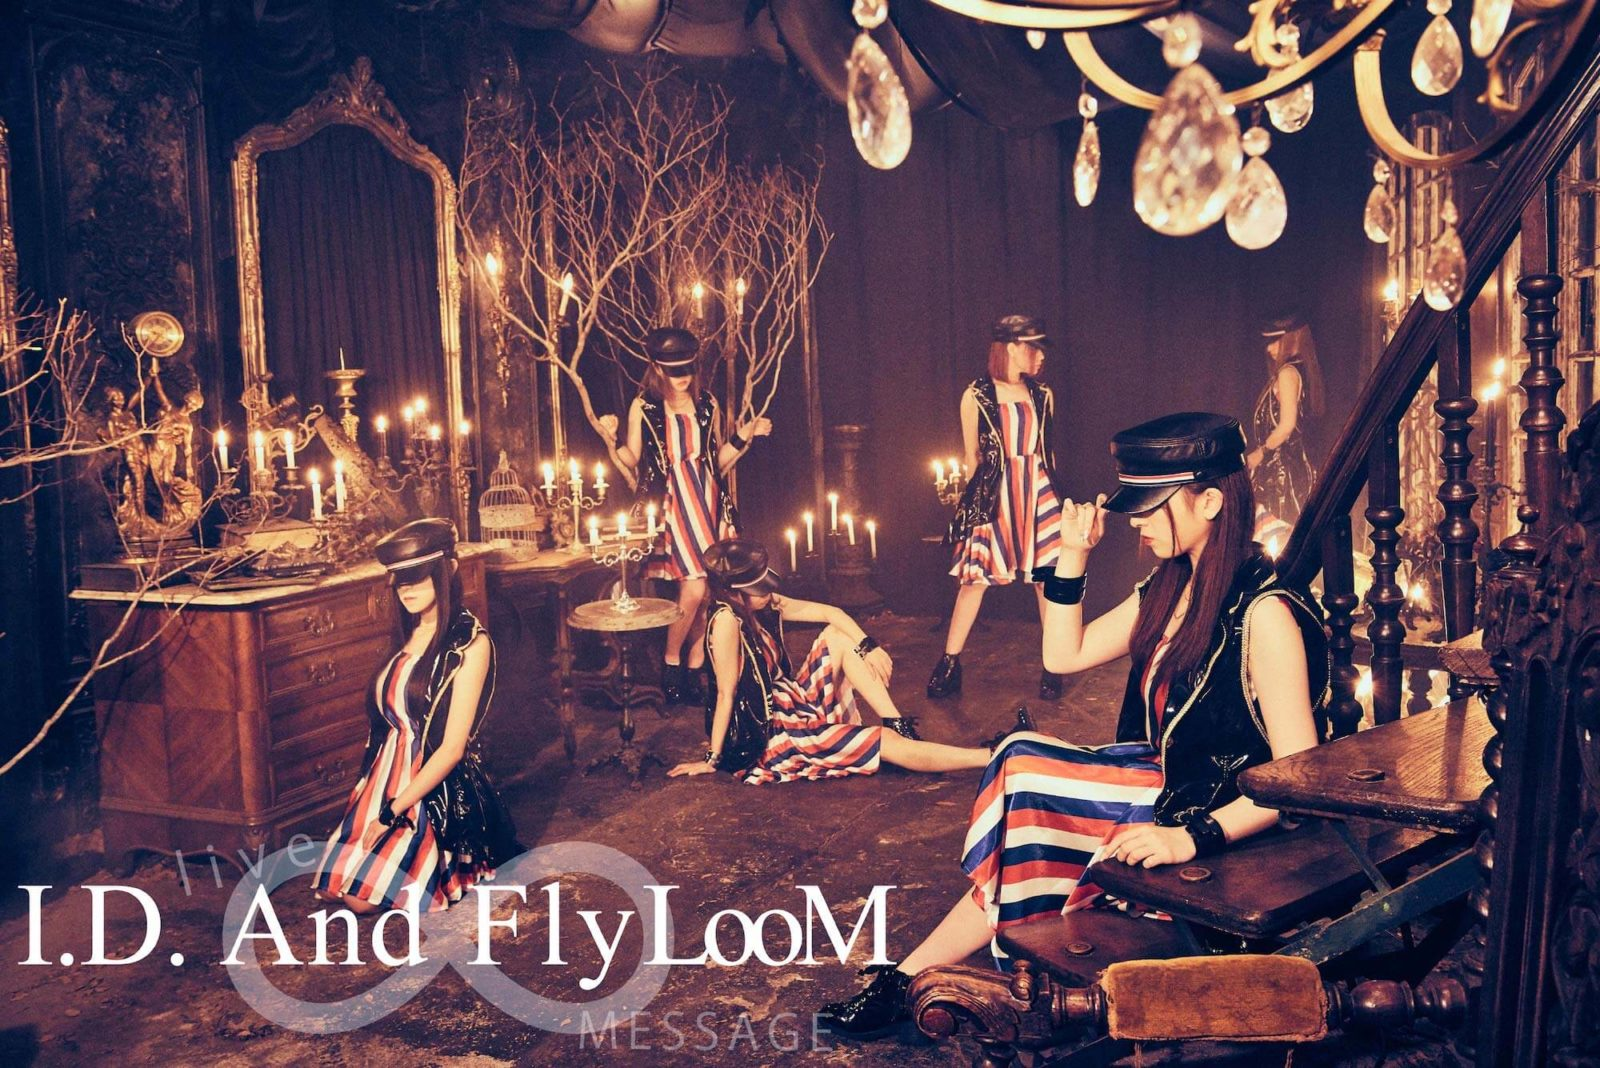 I.D.And Fly LooM 満員のEXシアターが熱狂、原点回帰の渋谷クアトロも決定サムネイル画像